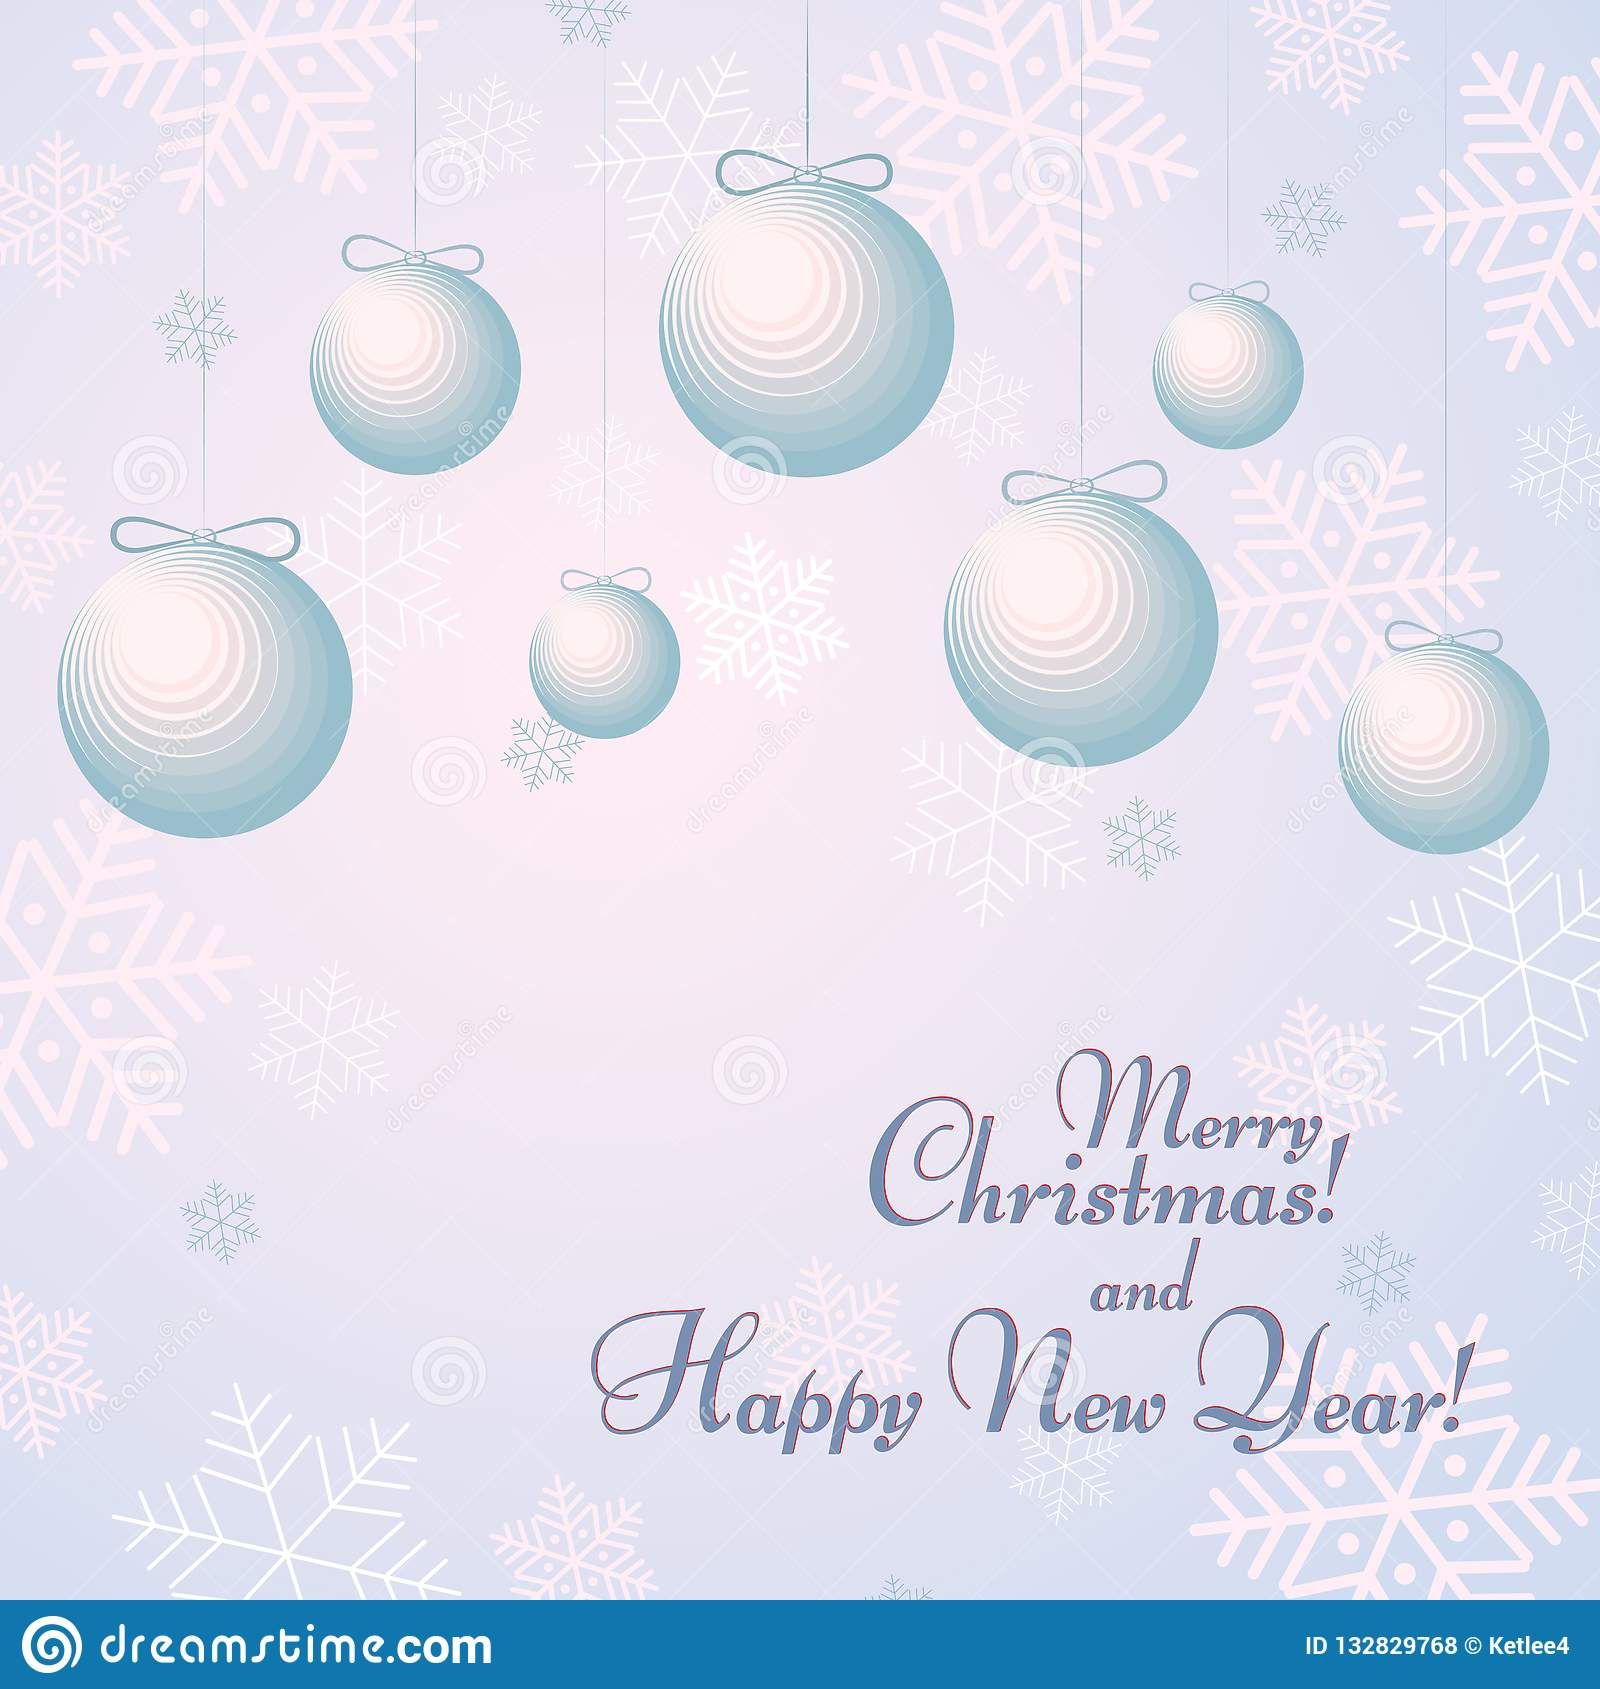 Balls with bows on a background with snowflakes Text Happy New Year and Merry Christmas Winter background